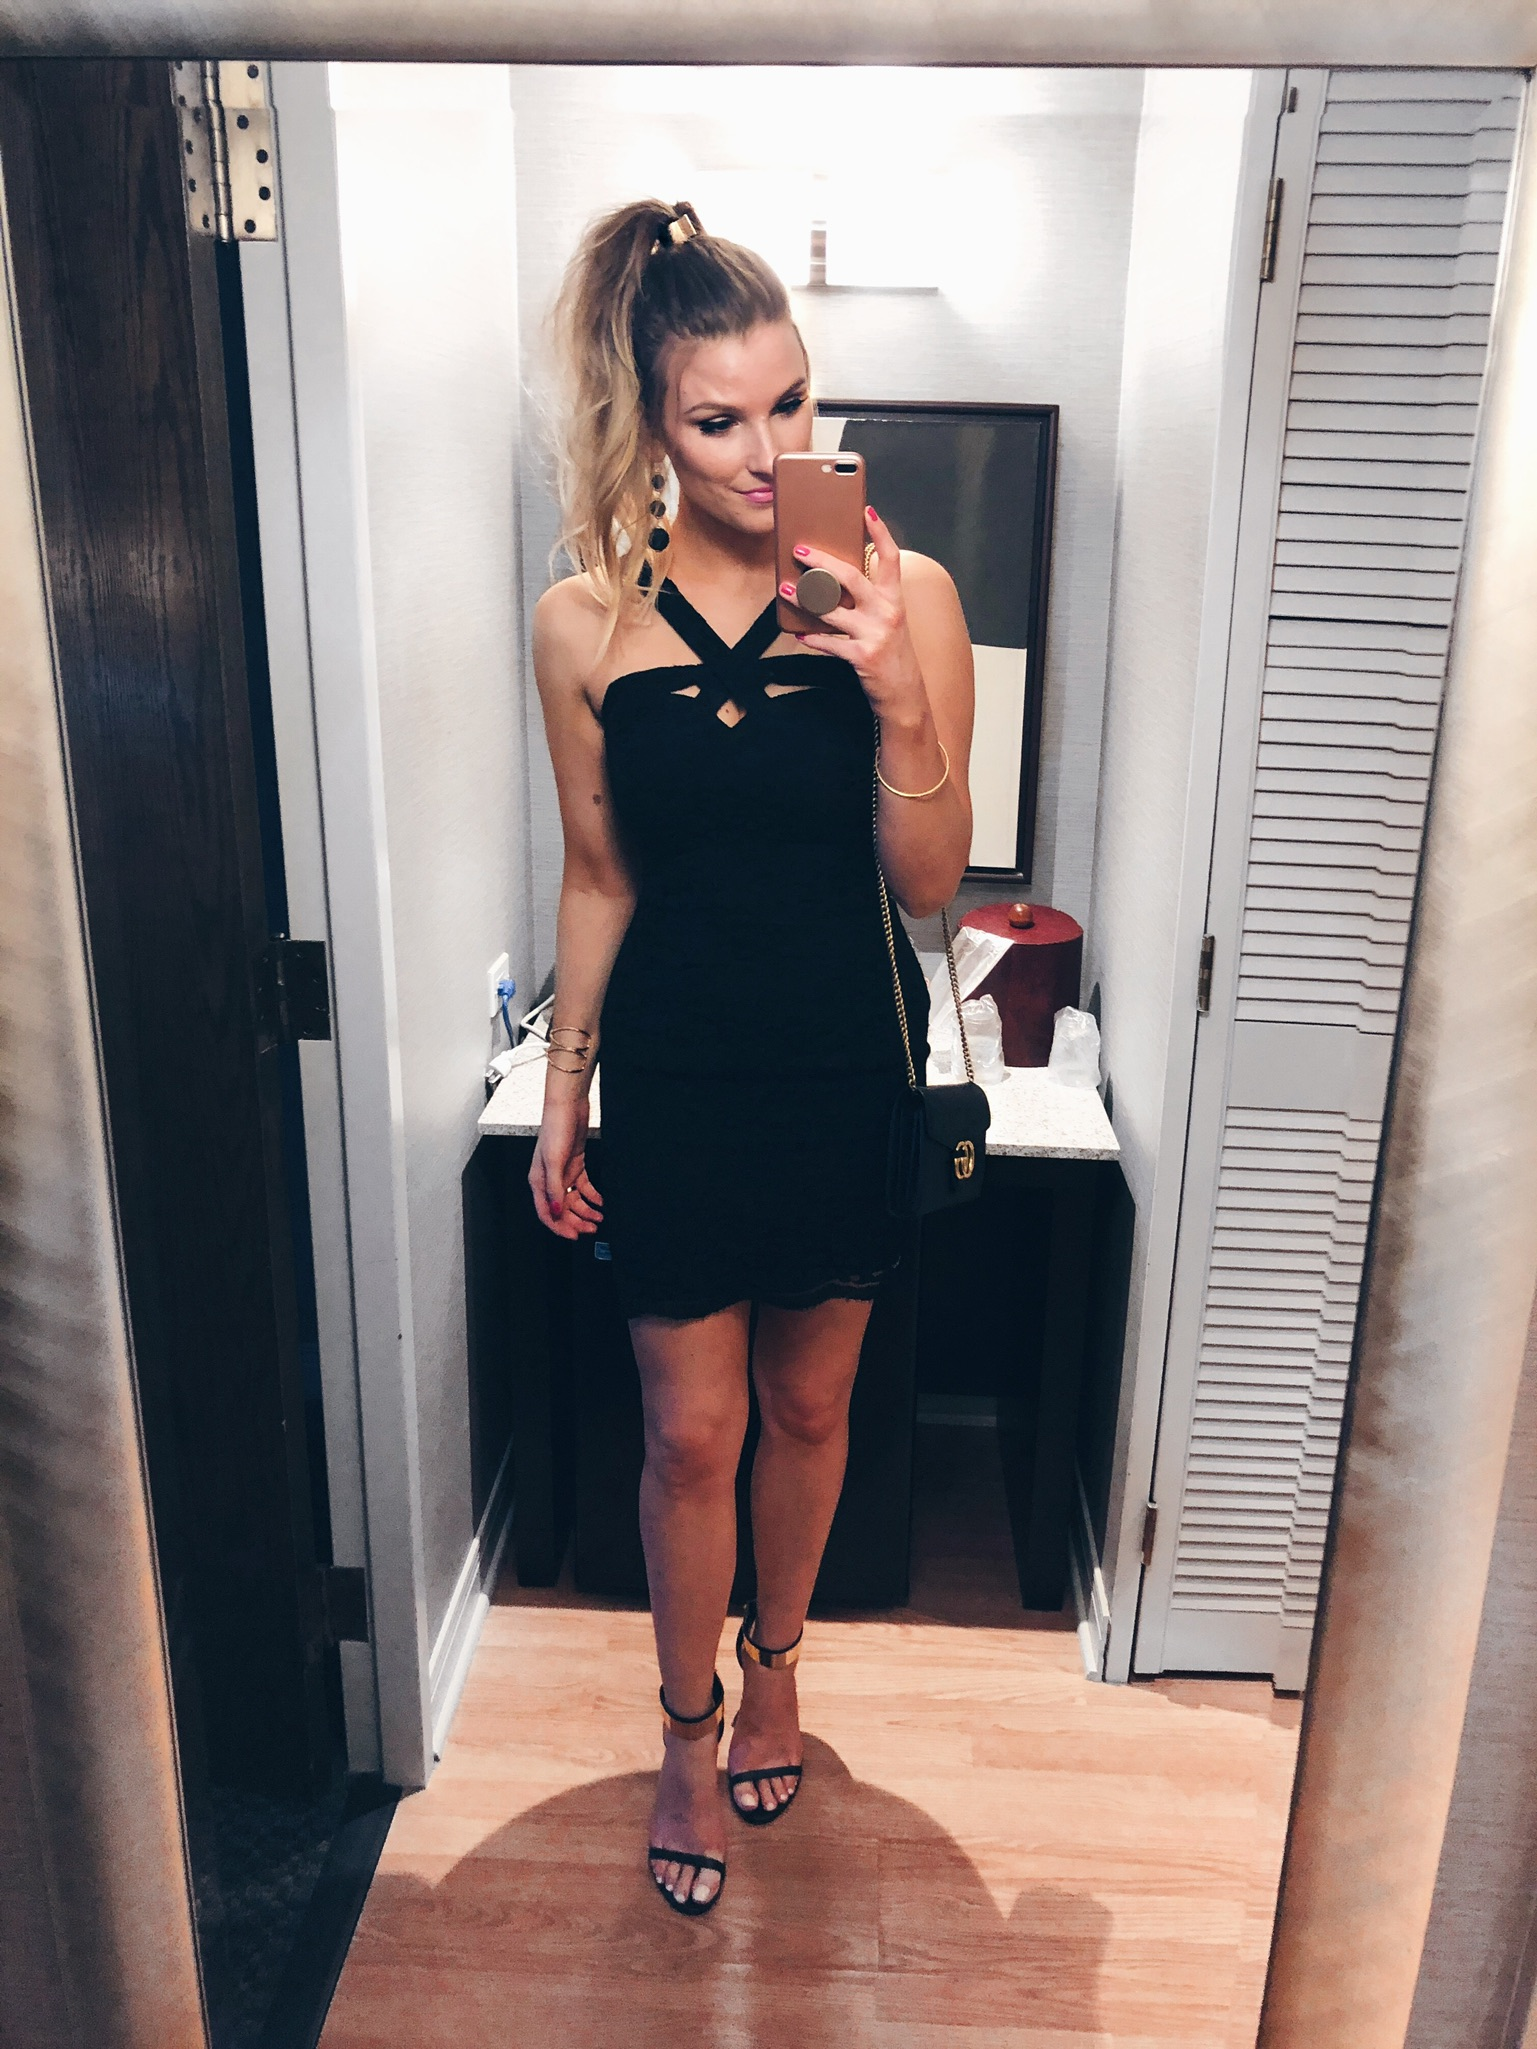 1 person, blonde girl in black dress, wedding guest